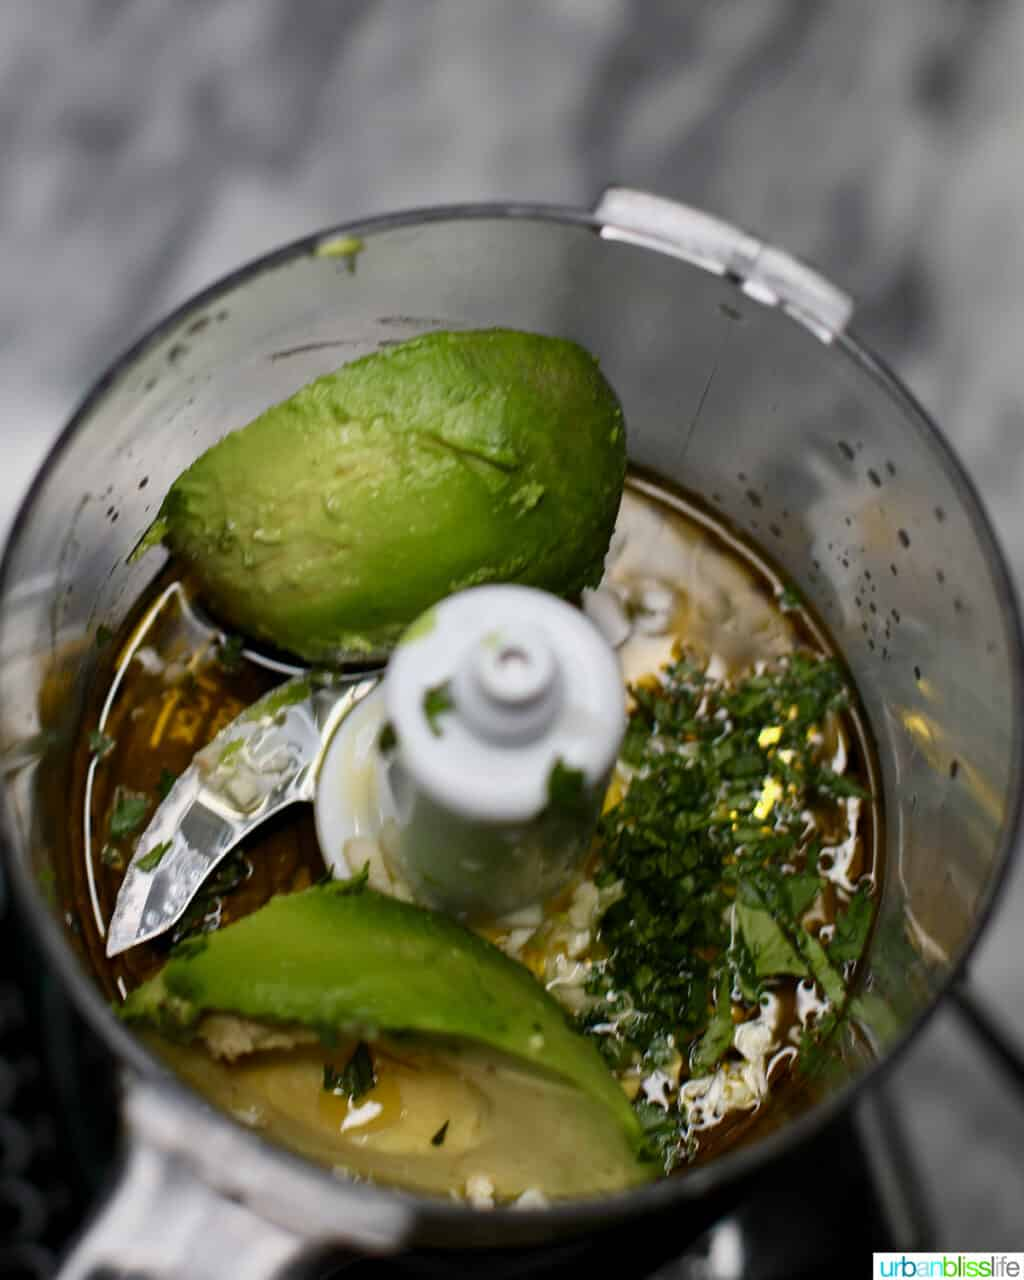 avocados and ingredients for pasta salad sauce in a food processor